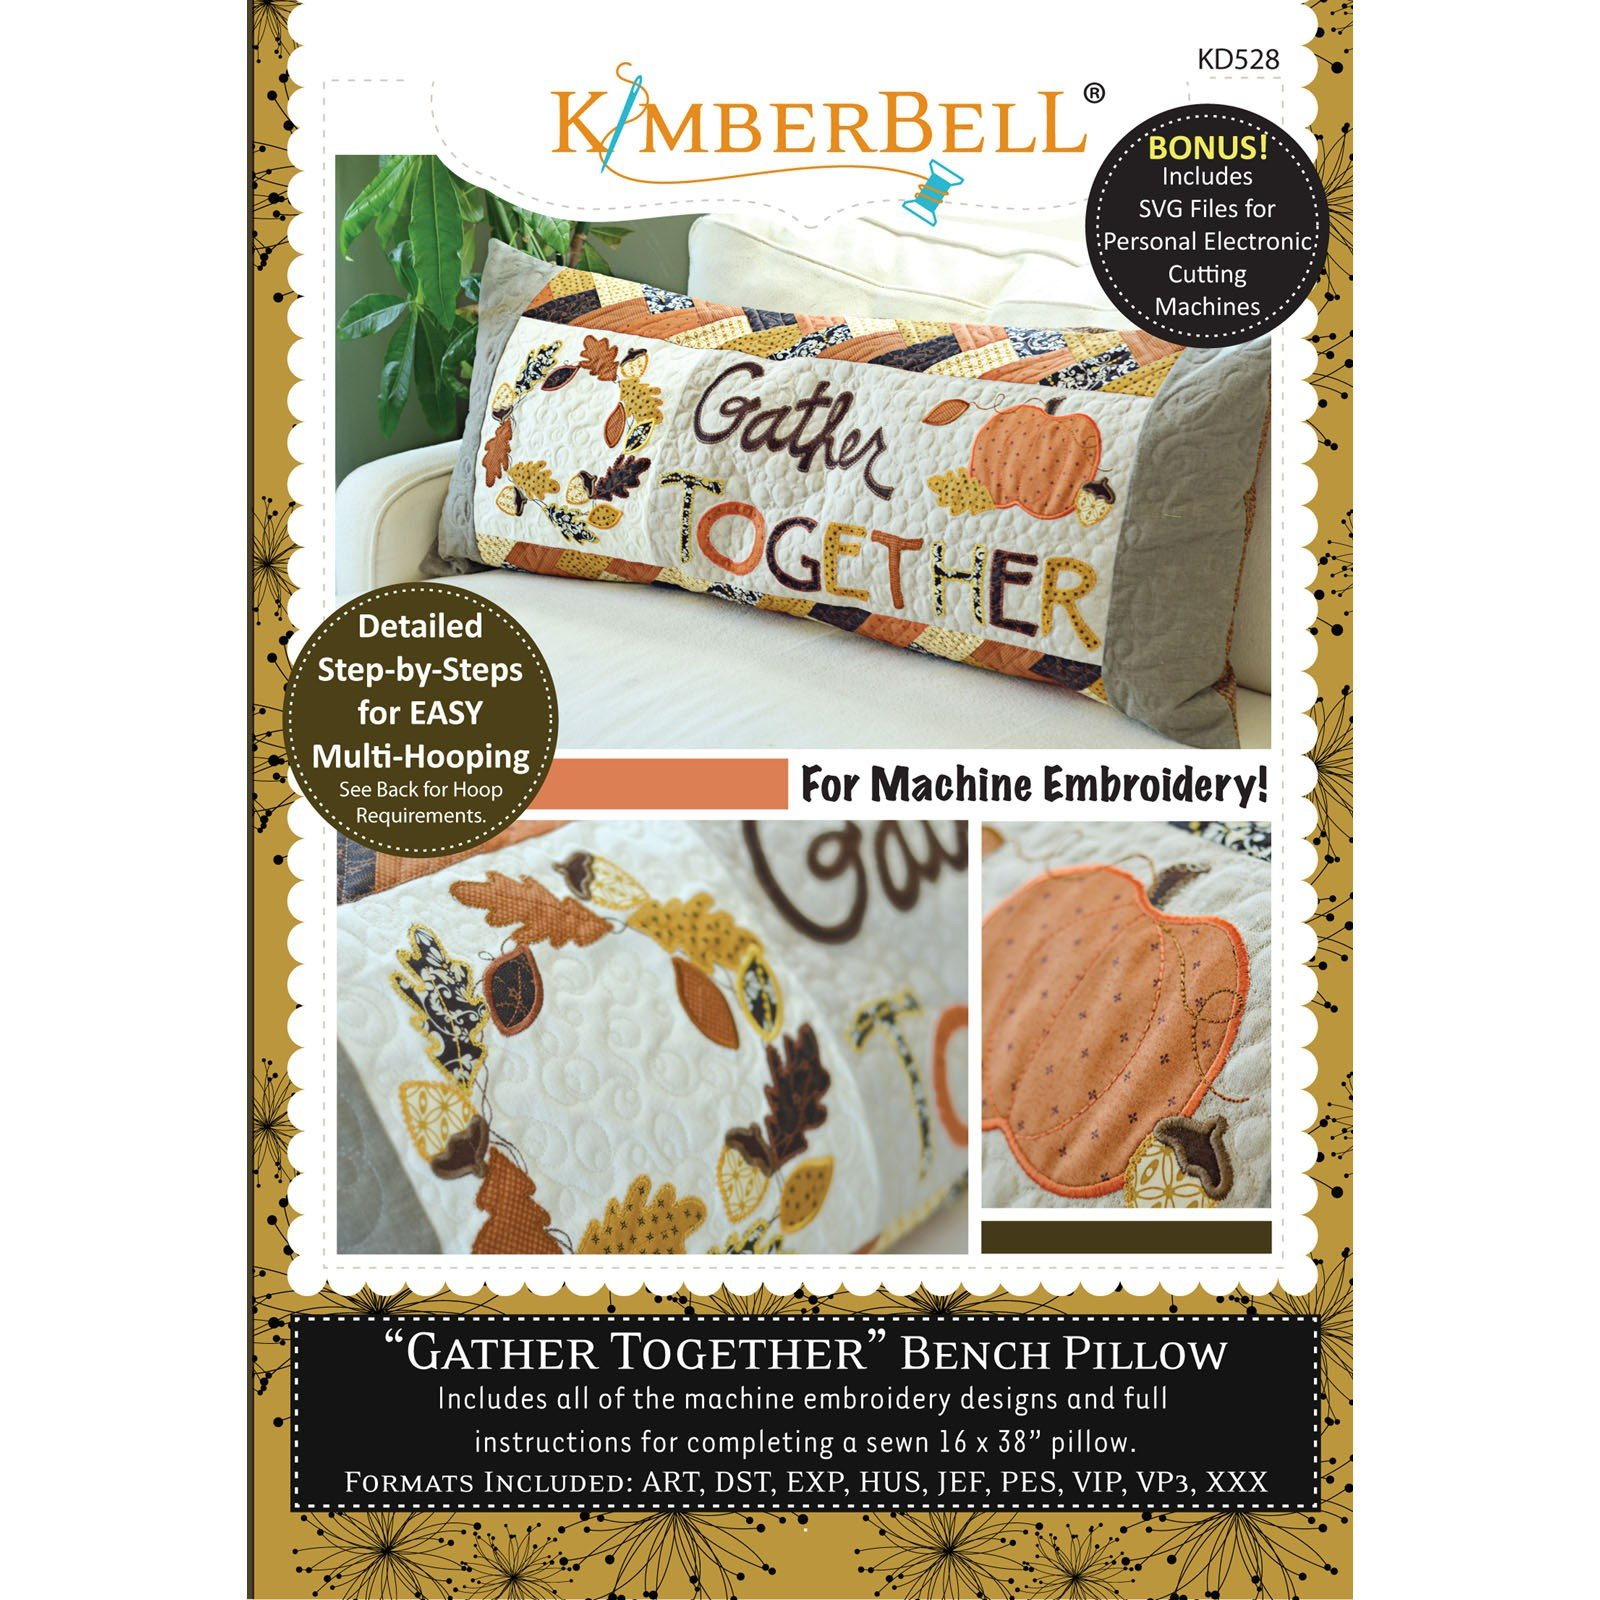 Gather Together Bench Pillow (Embroidery CD) by Kimberbell